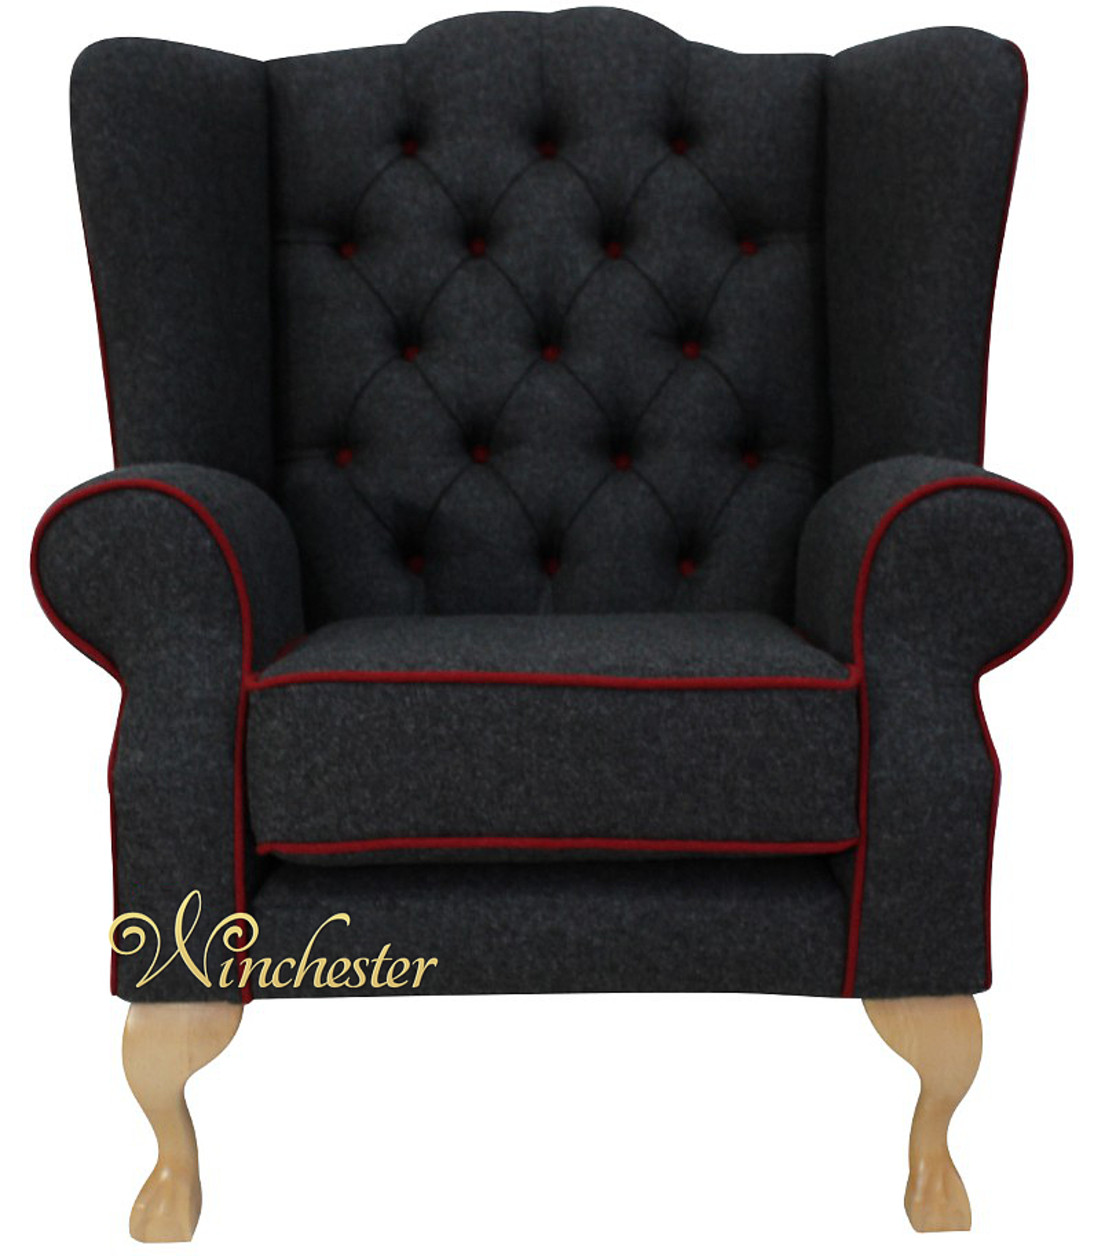 Chesterfield Frederick Wing Chair Fireside High Back Armchair Skye Red  Check Fabric Part 94